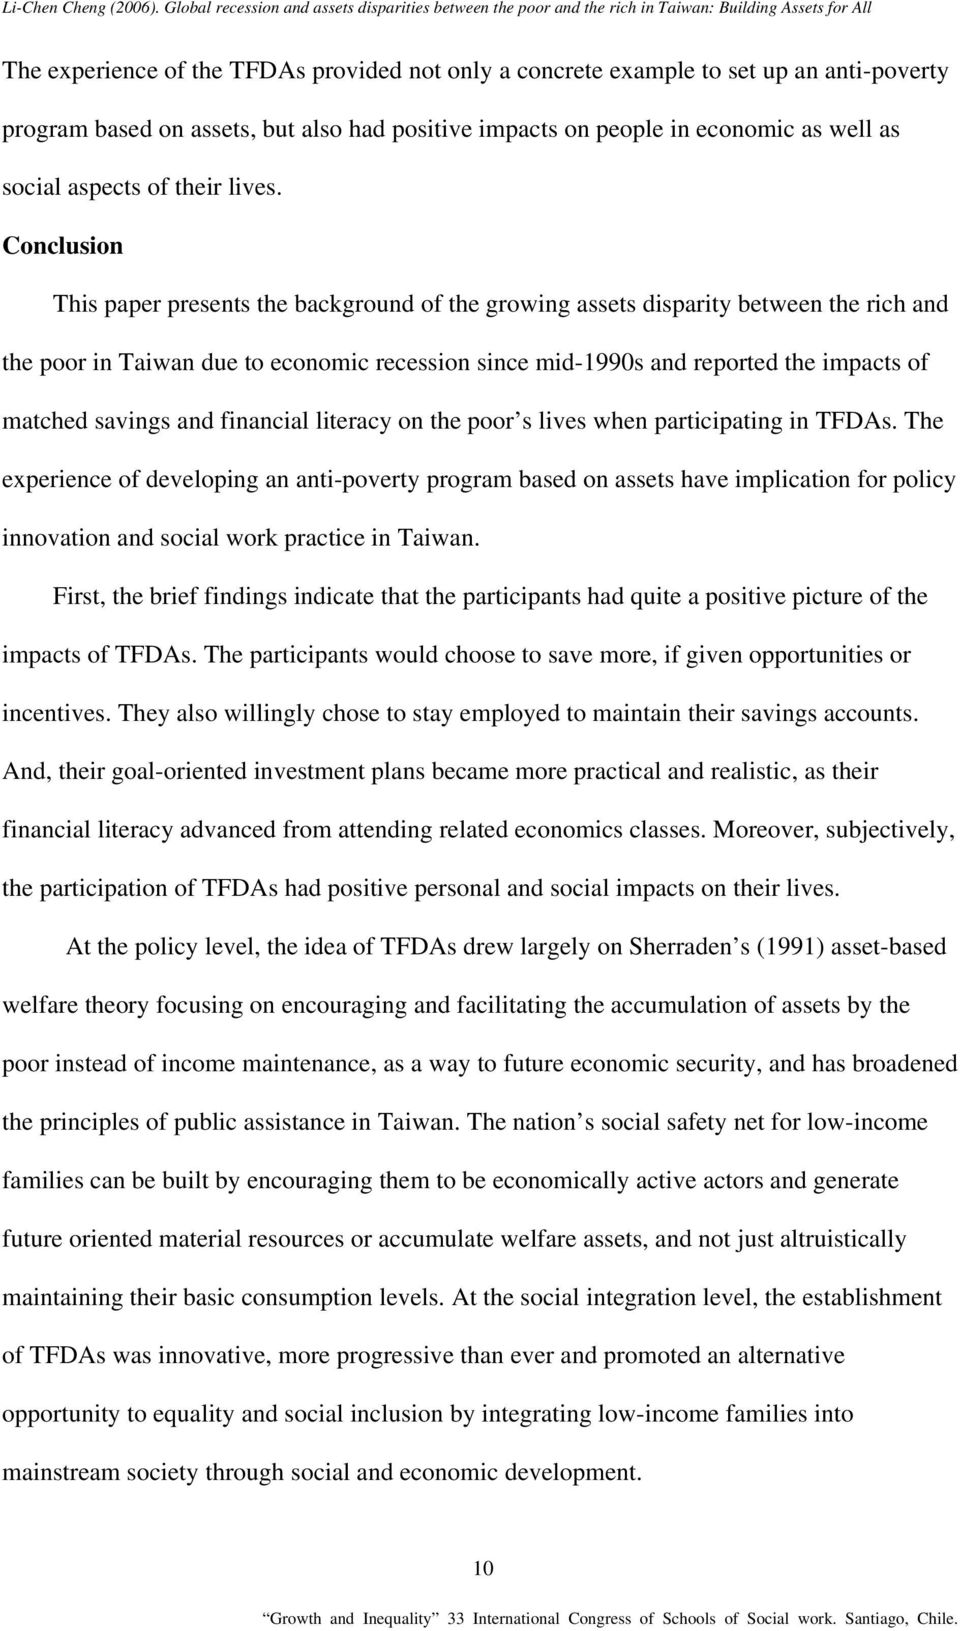 Conclusion This paper presents the background of the growing assets disparity between the rich and the poor in Taiwan due to economic recession since mid-1990s and reported the impacts of matched